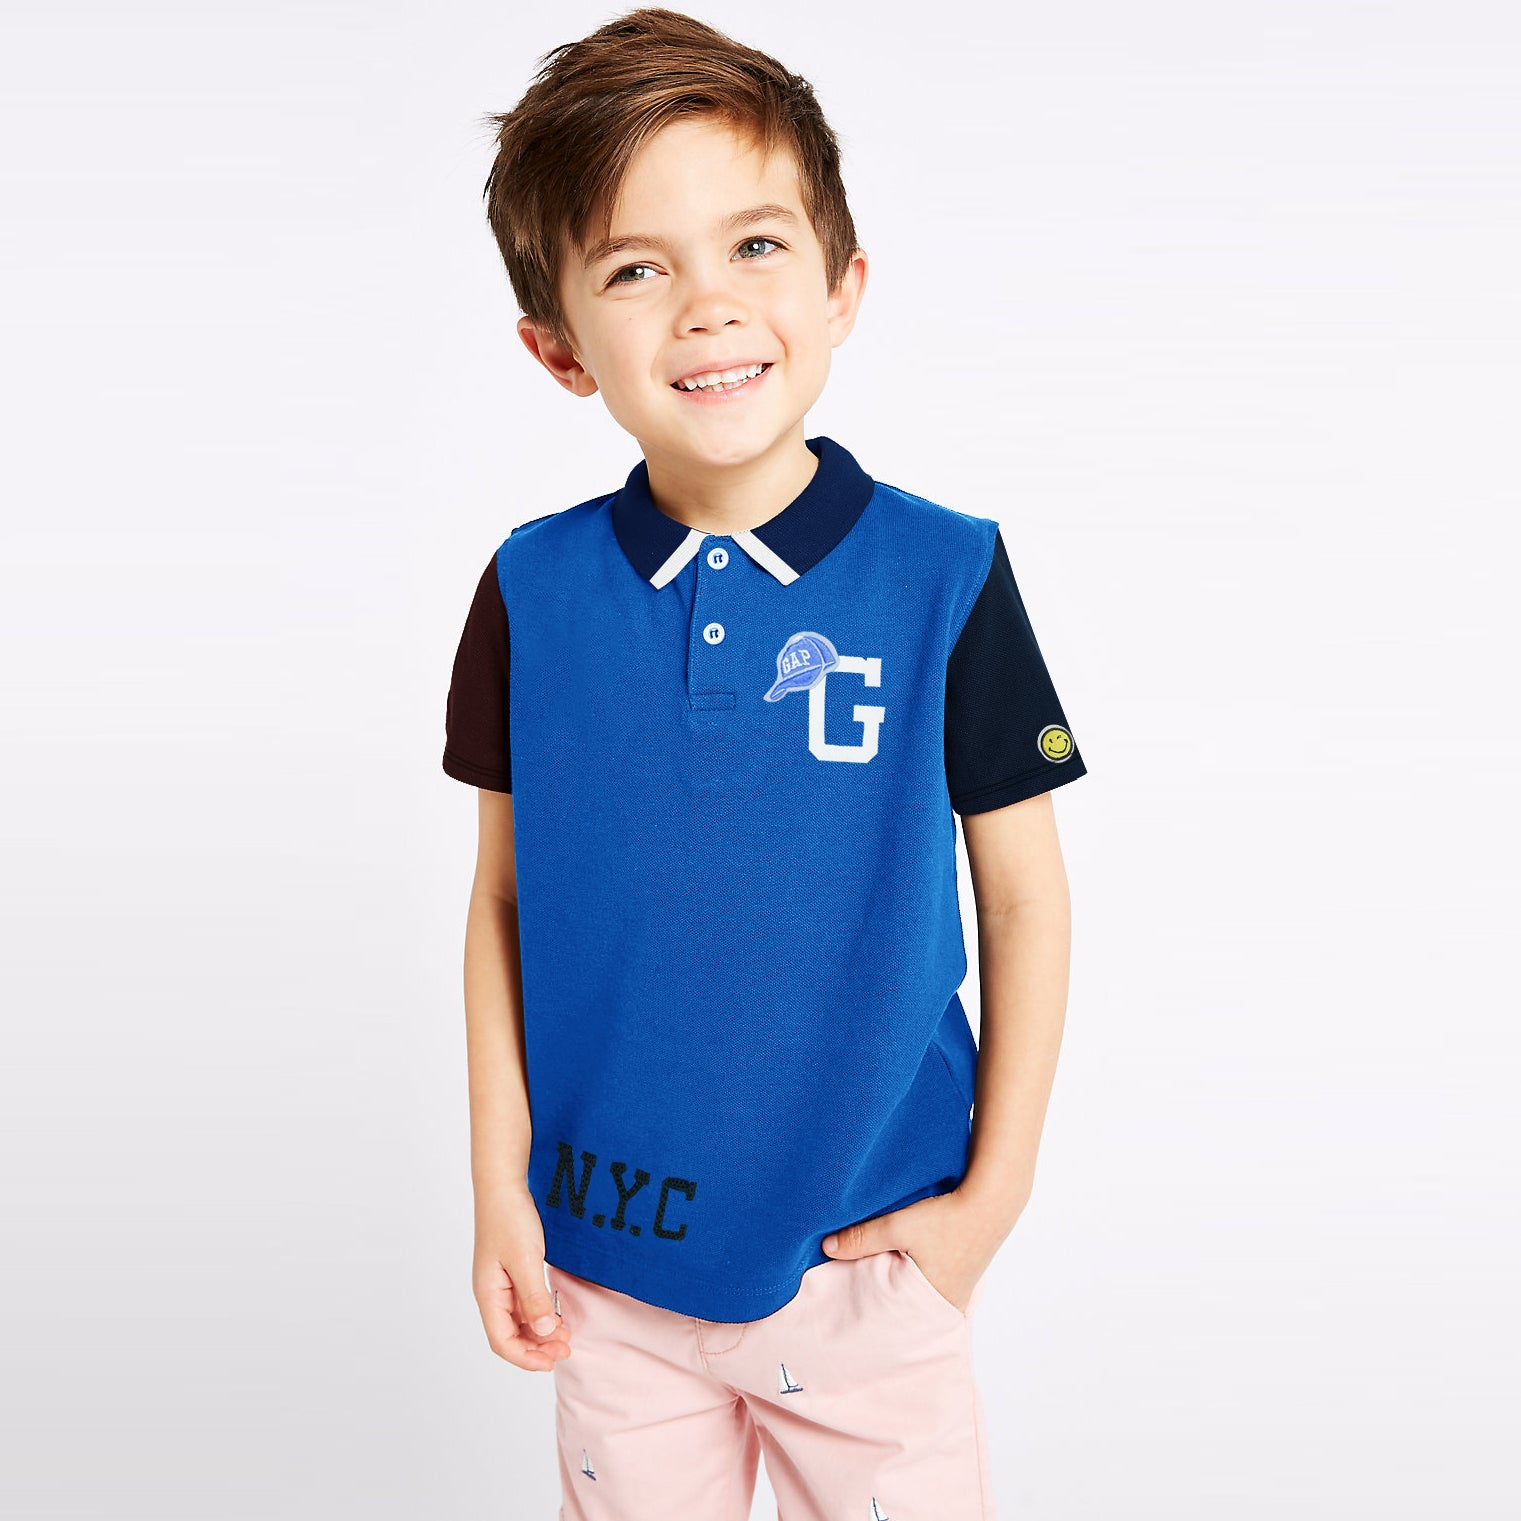 brandsego - GAP Half Sleeve P.Q Polo Shirt For Kids-BE8527